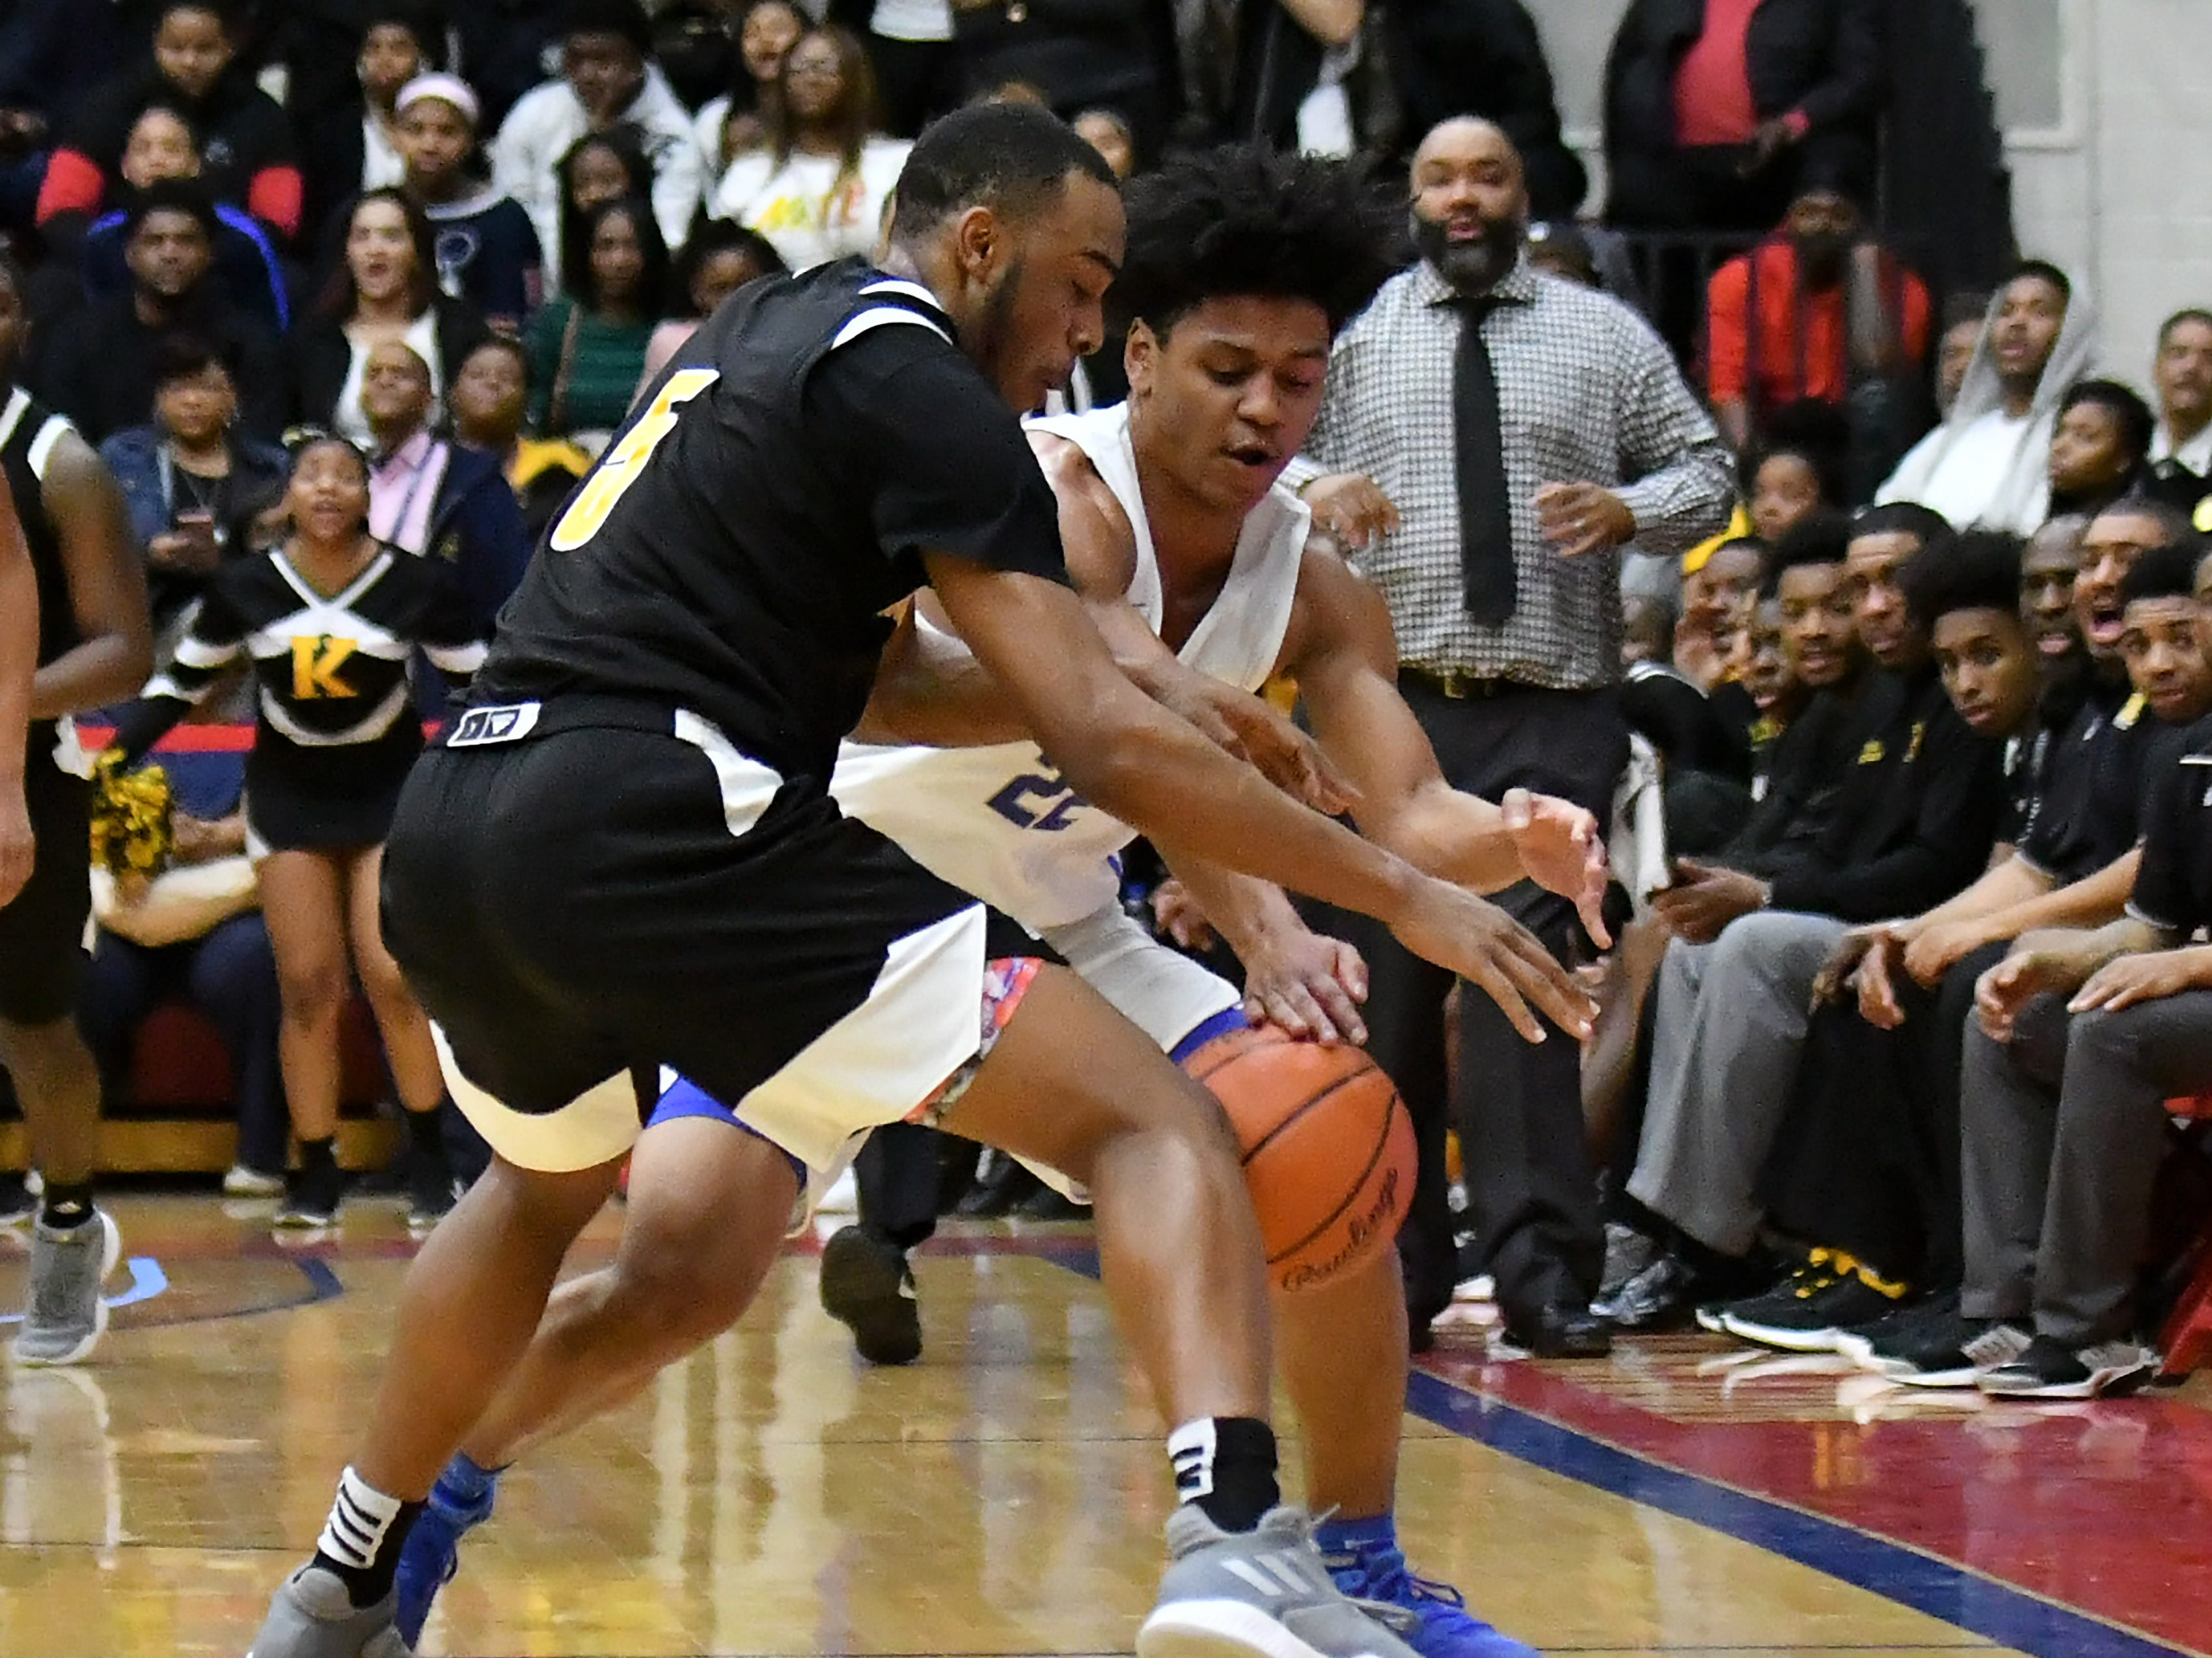 King's John Massey, Jr. almost steals the ball from Lincoln's Ibn Abdul-Rahman (22) in the last minute of the game in the second half.